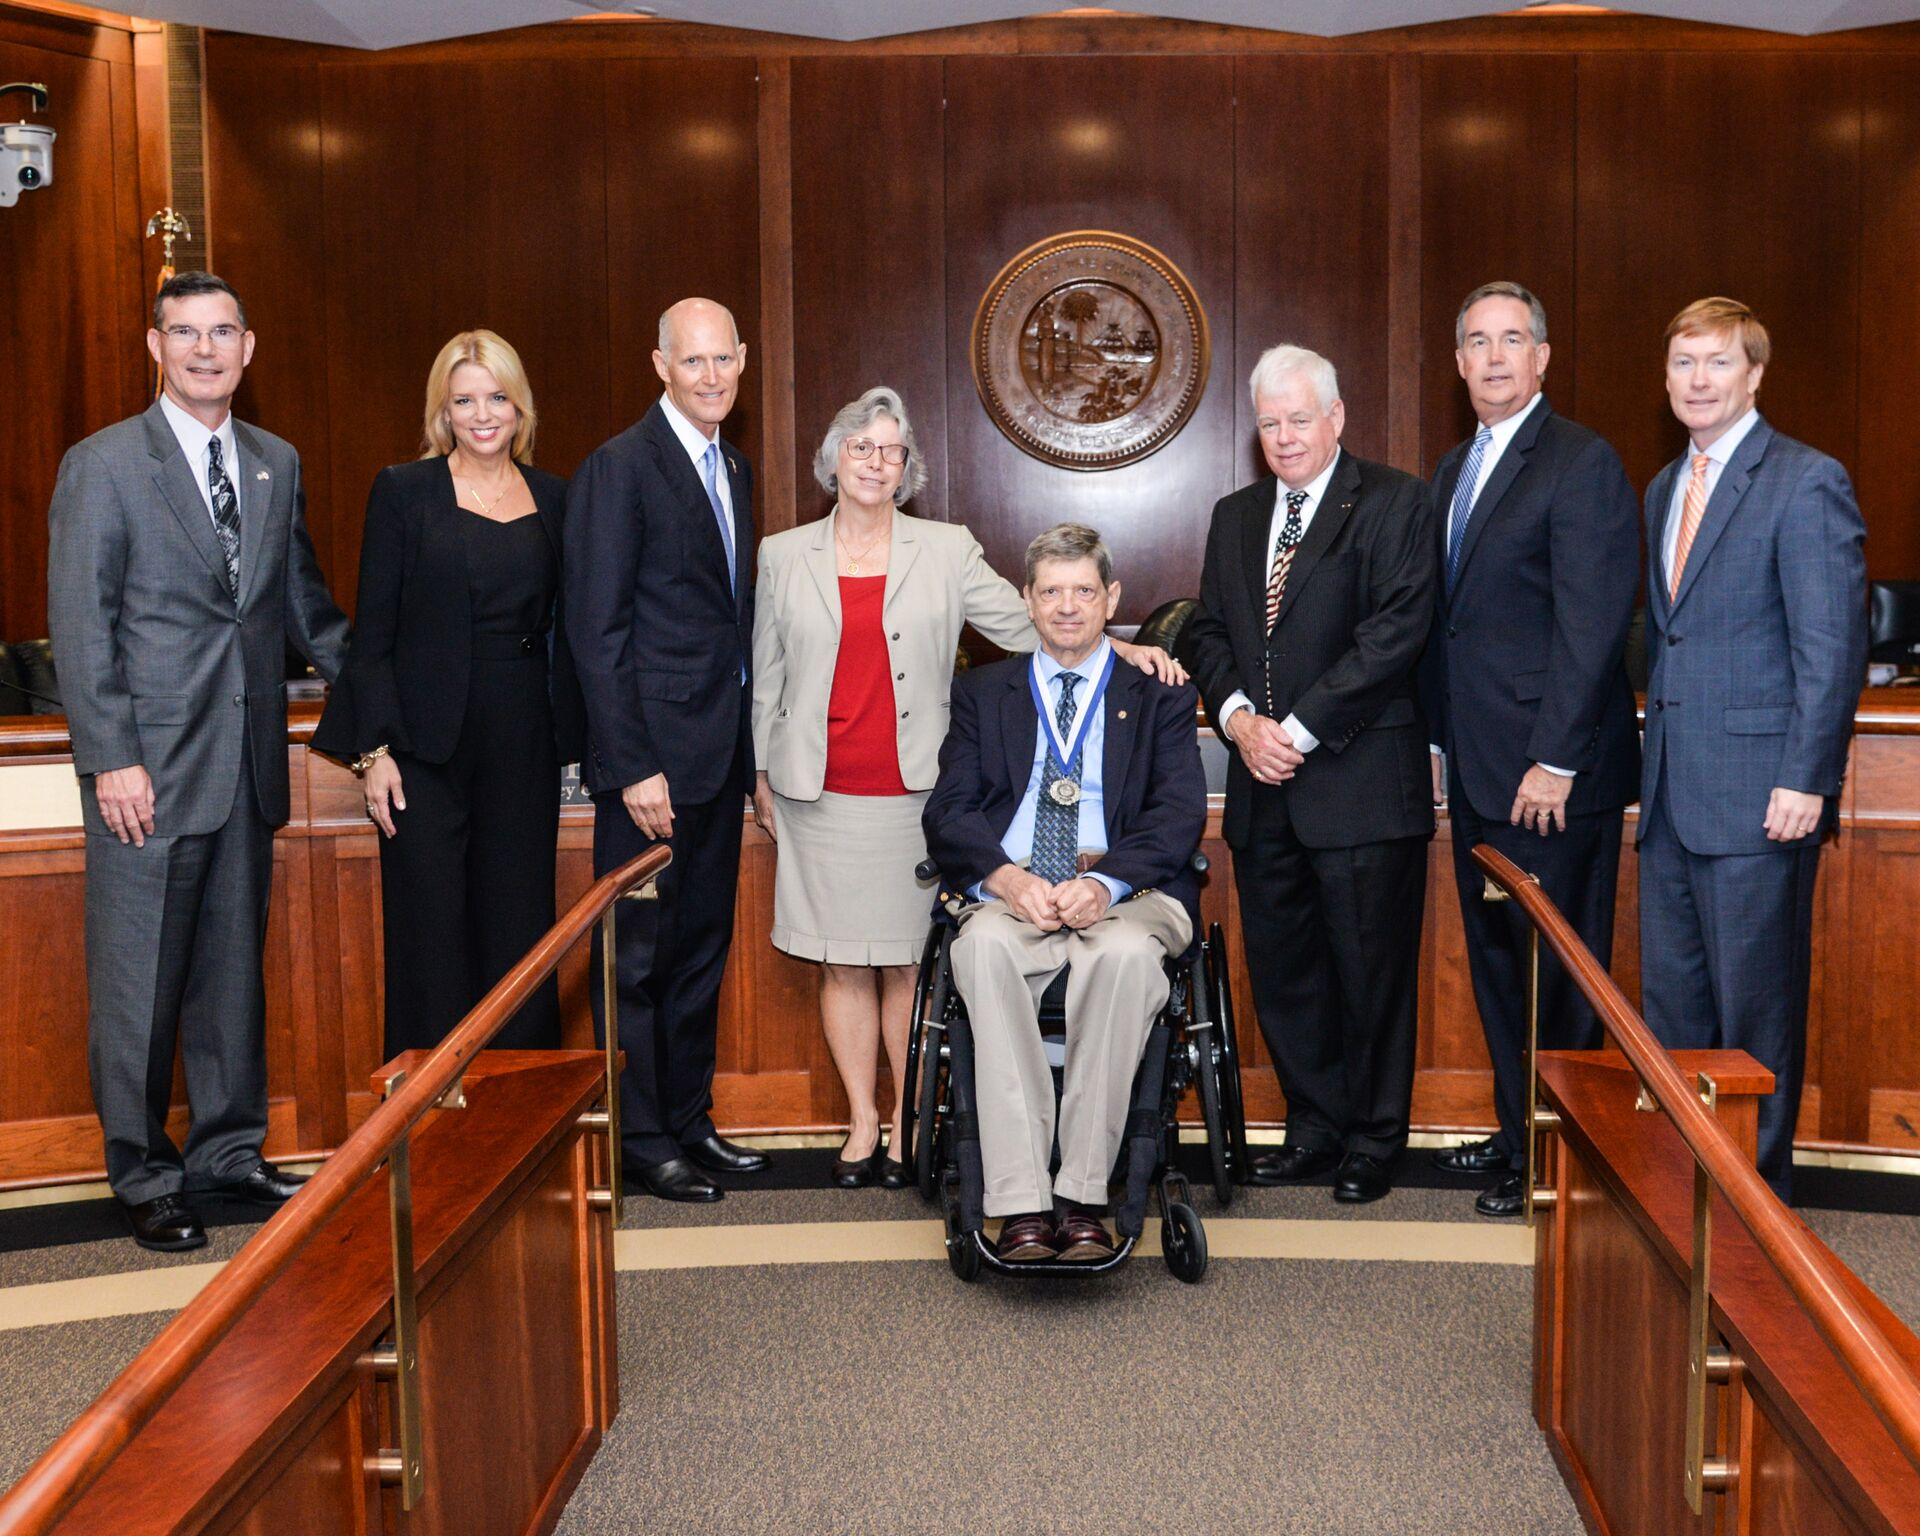 Today, During A Meeting Of The Florida Cabinet, Governor Rick Scott  Recognized George Bennett (Ben) Ritter With The Governoru0027s Medal Of Merit.